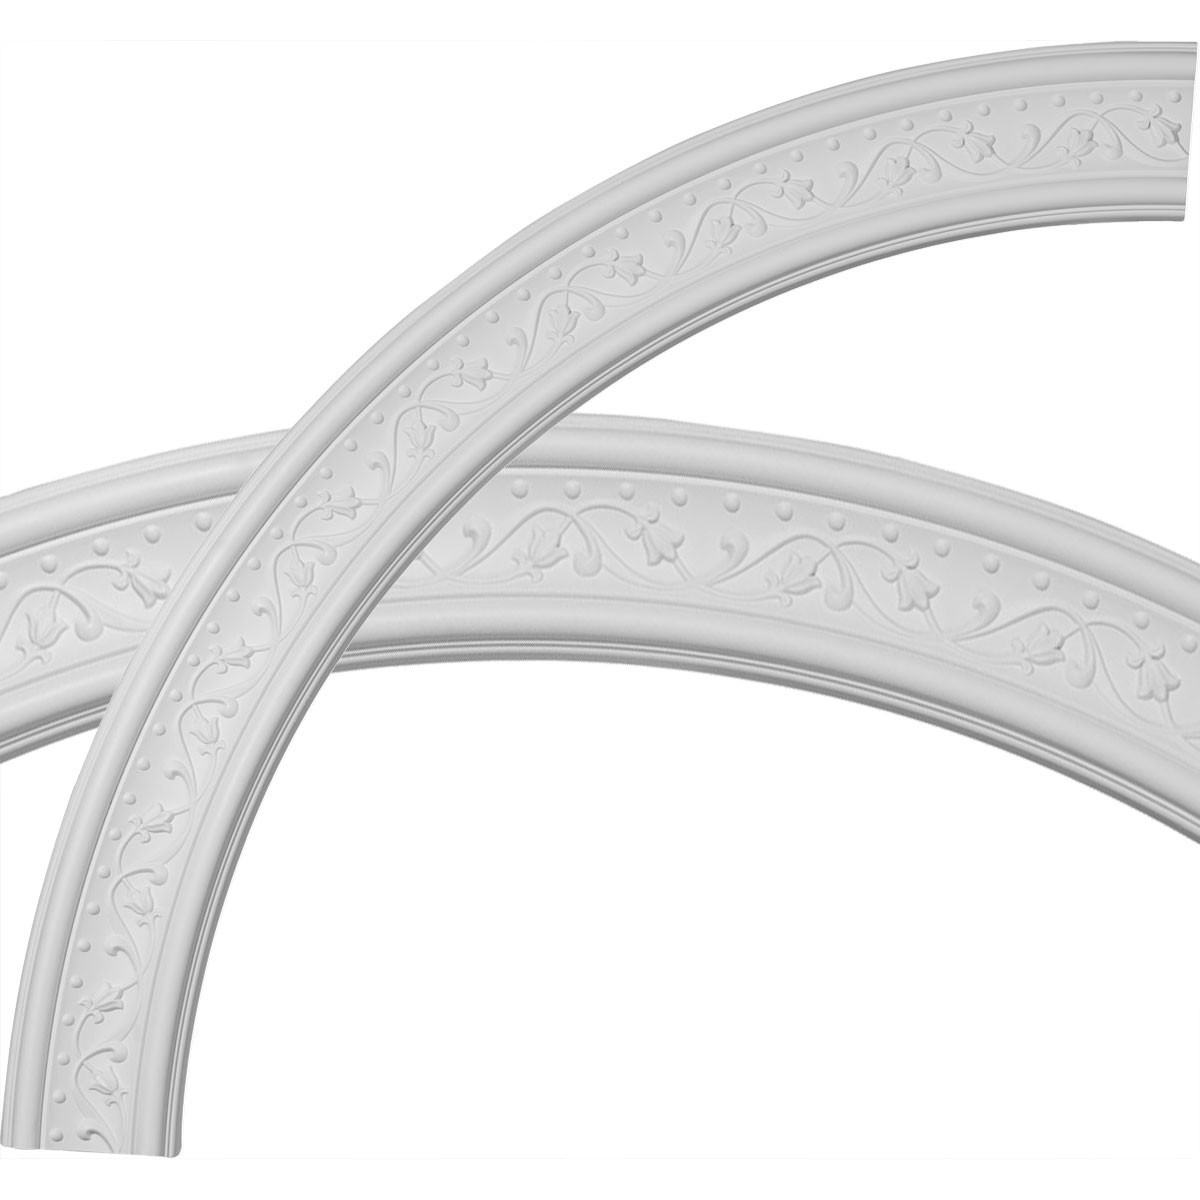 """EM-CR51MA - 51""""OD x 43""""ID x 4""""W x 7/8""""P Marcella Ceiling Ring (1/4 of complete circle)"""